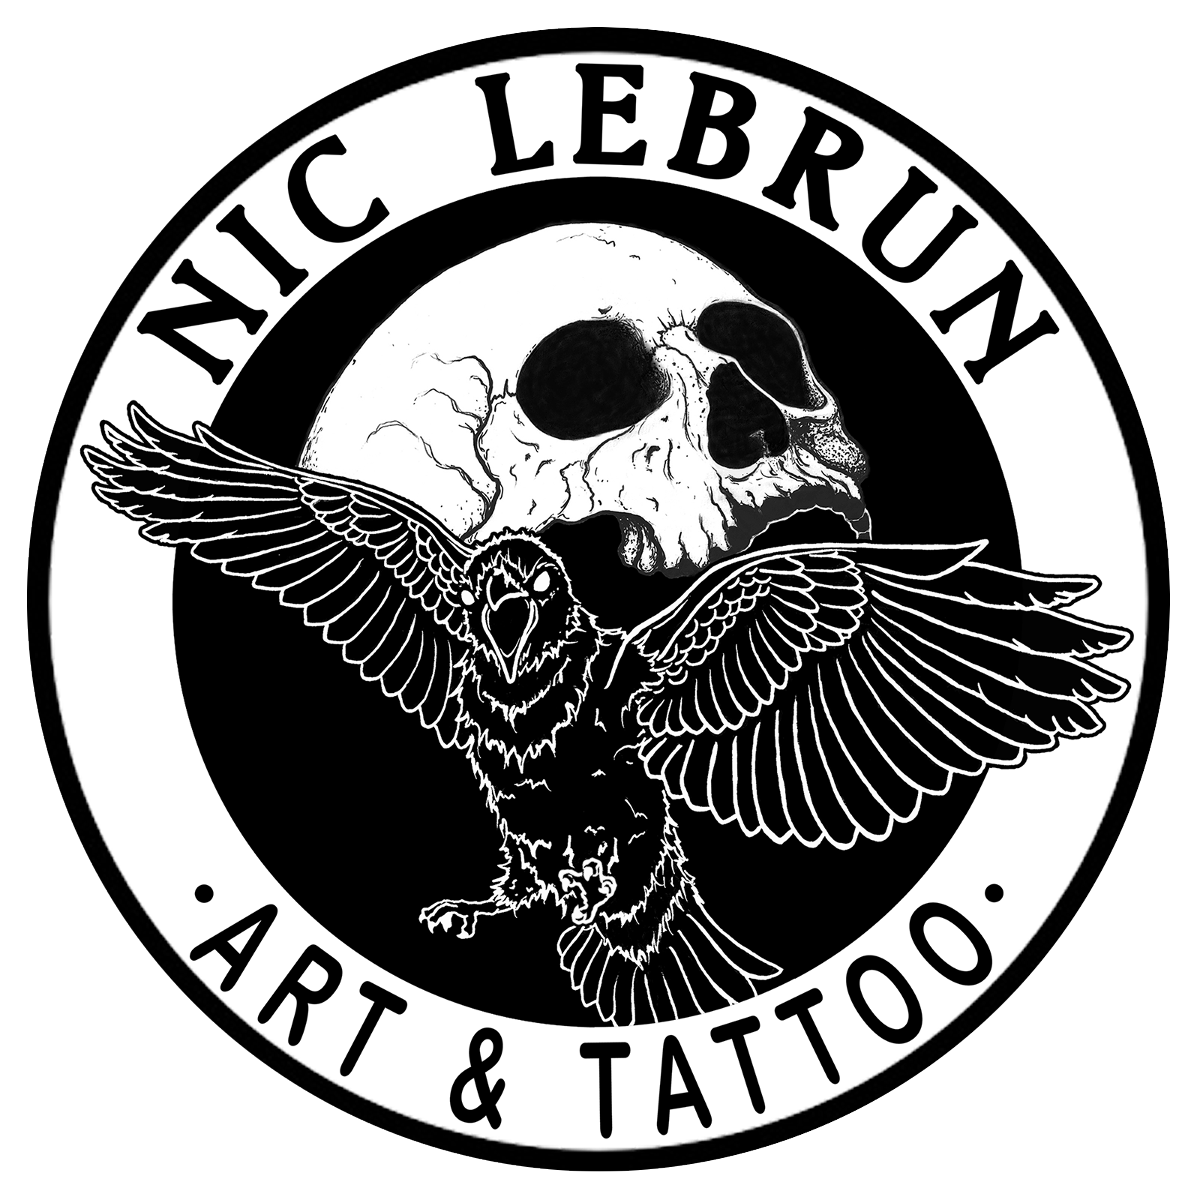 Tattoo logo png. Nic lebrun tattoonow